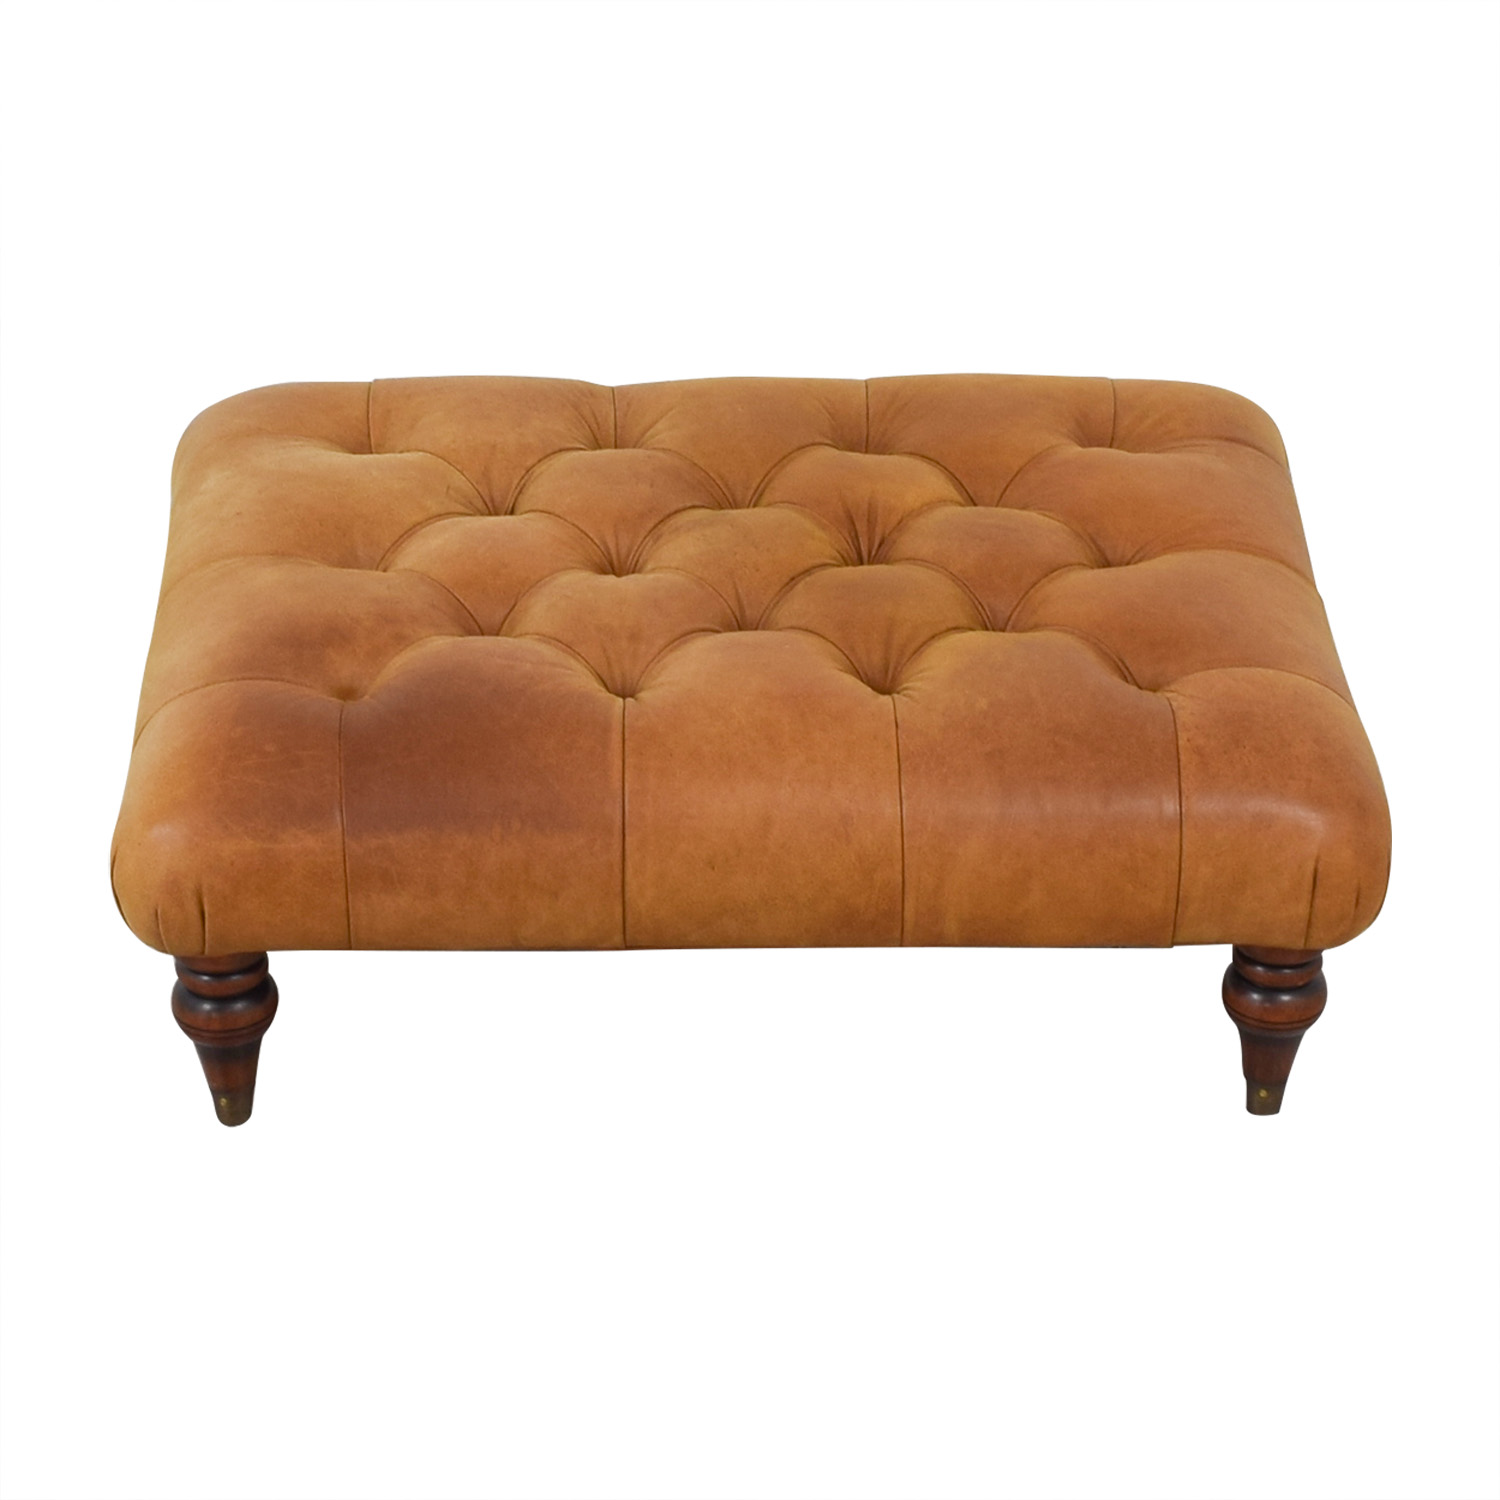 Laura Ashley Radley Leather Ottoman sale